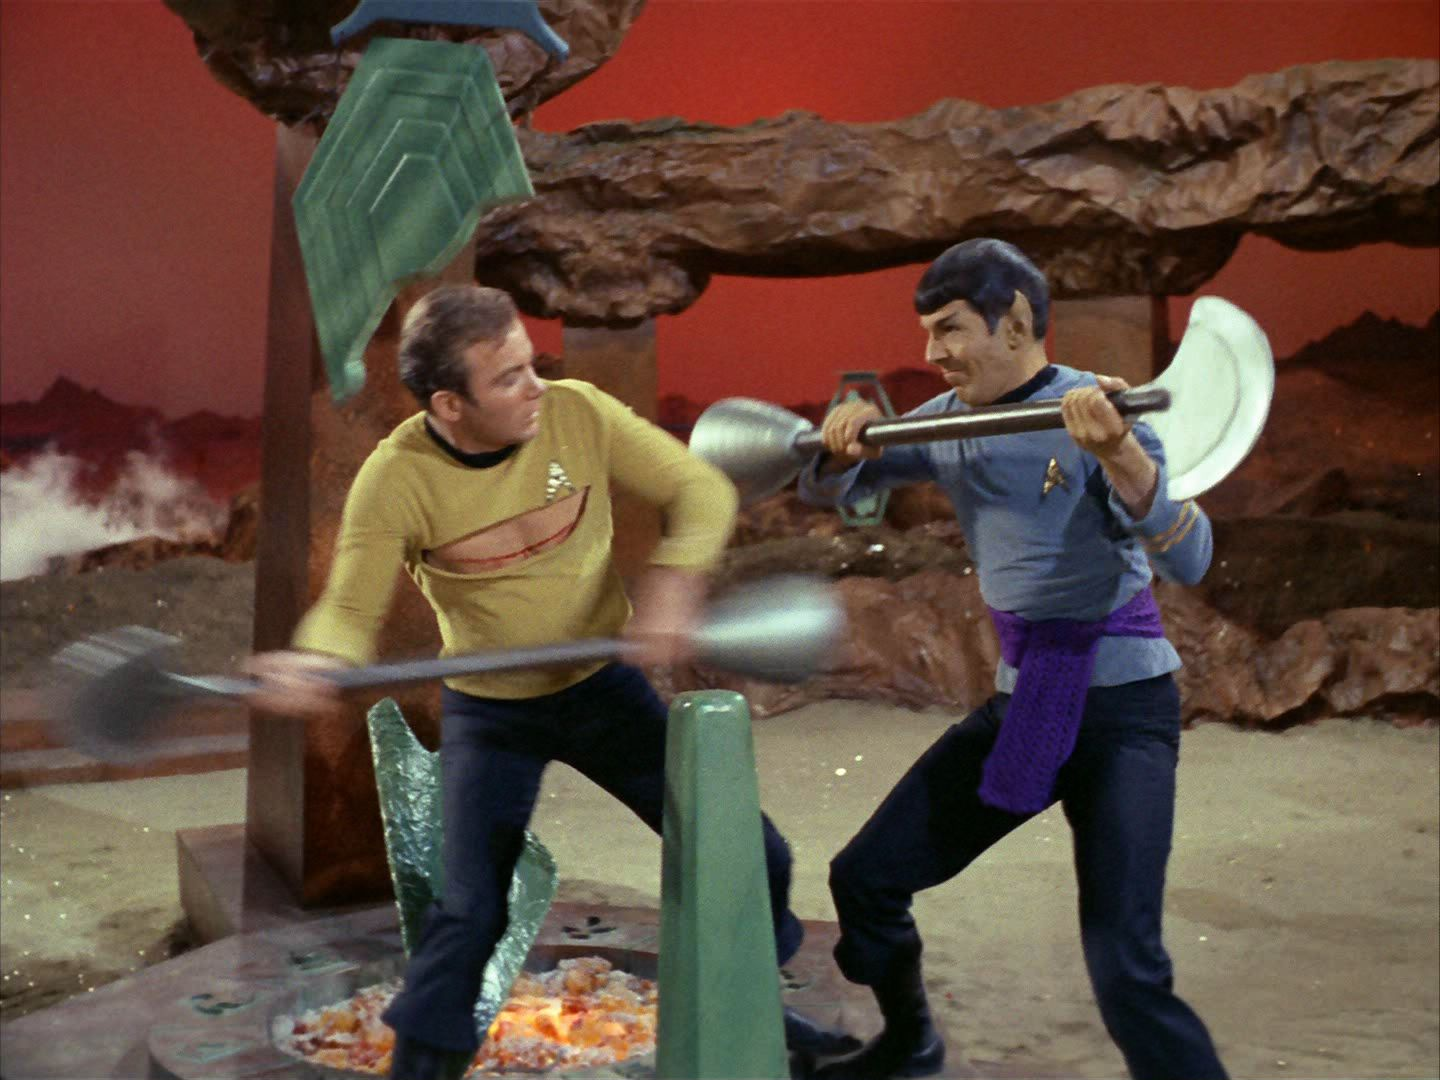 image of Star Trek fight sound